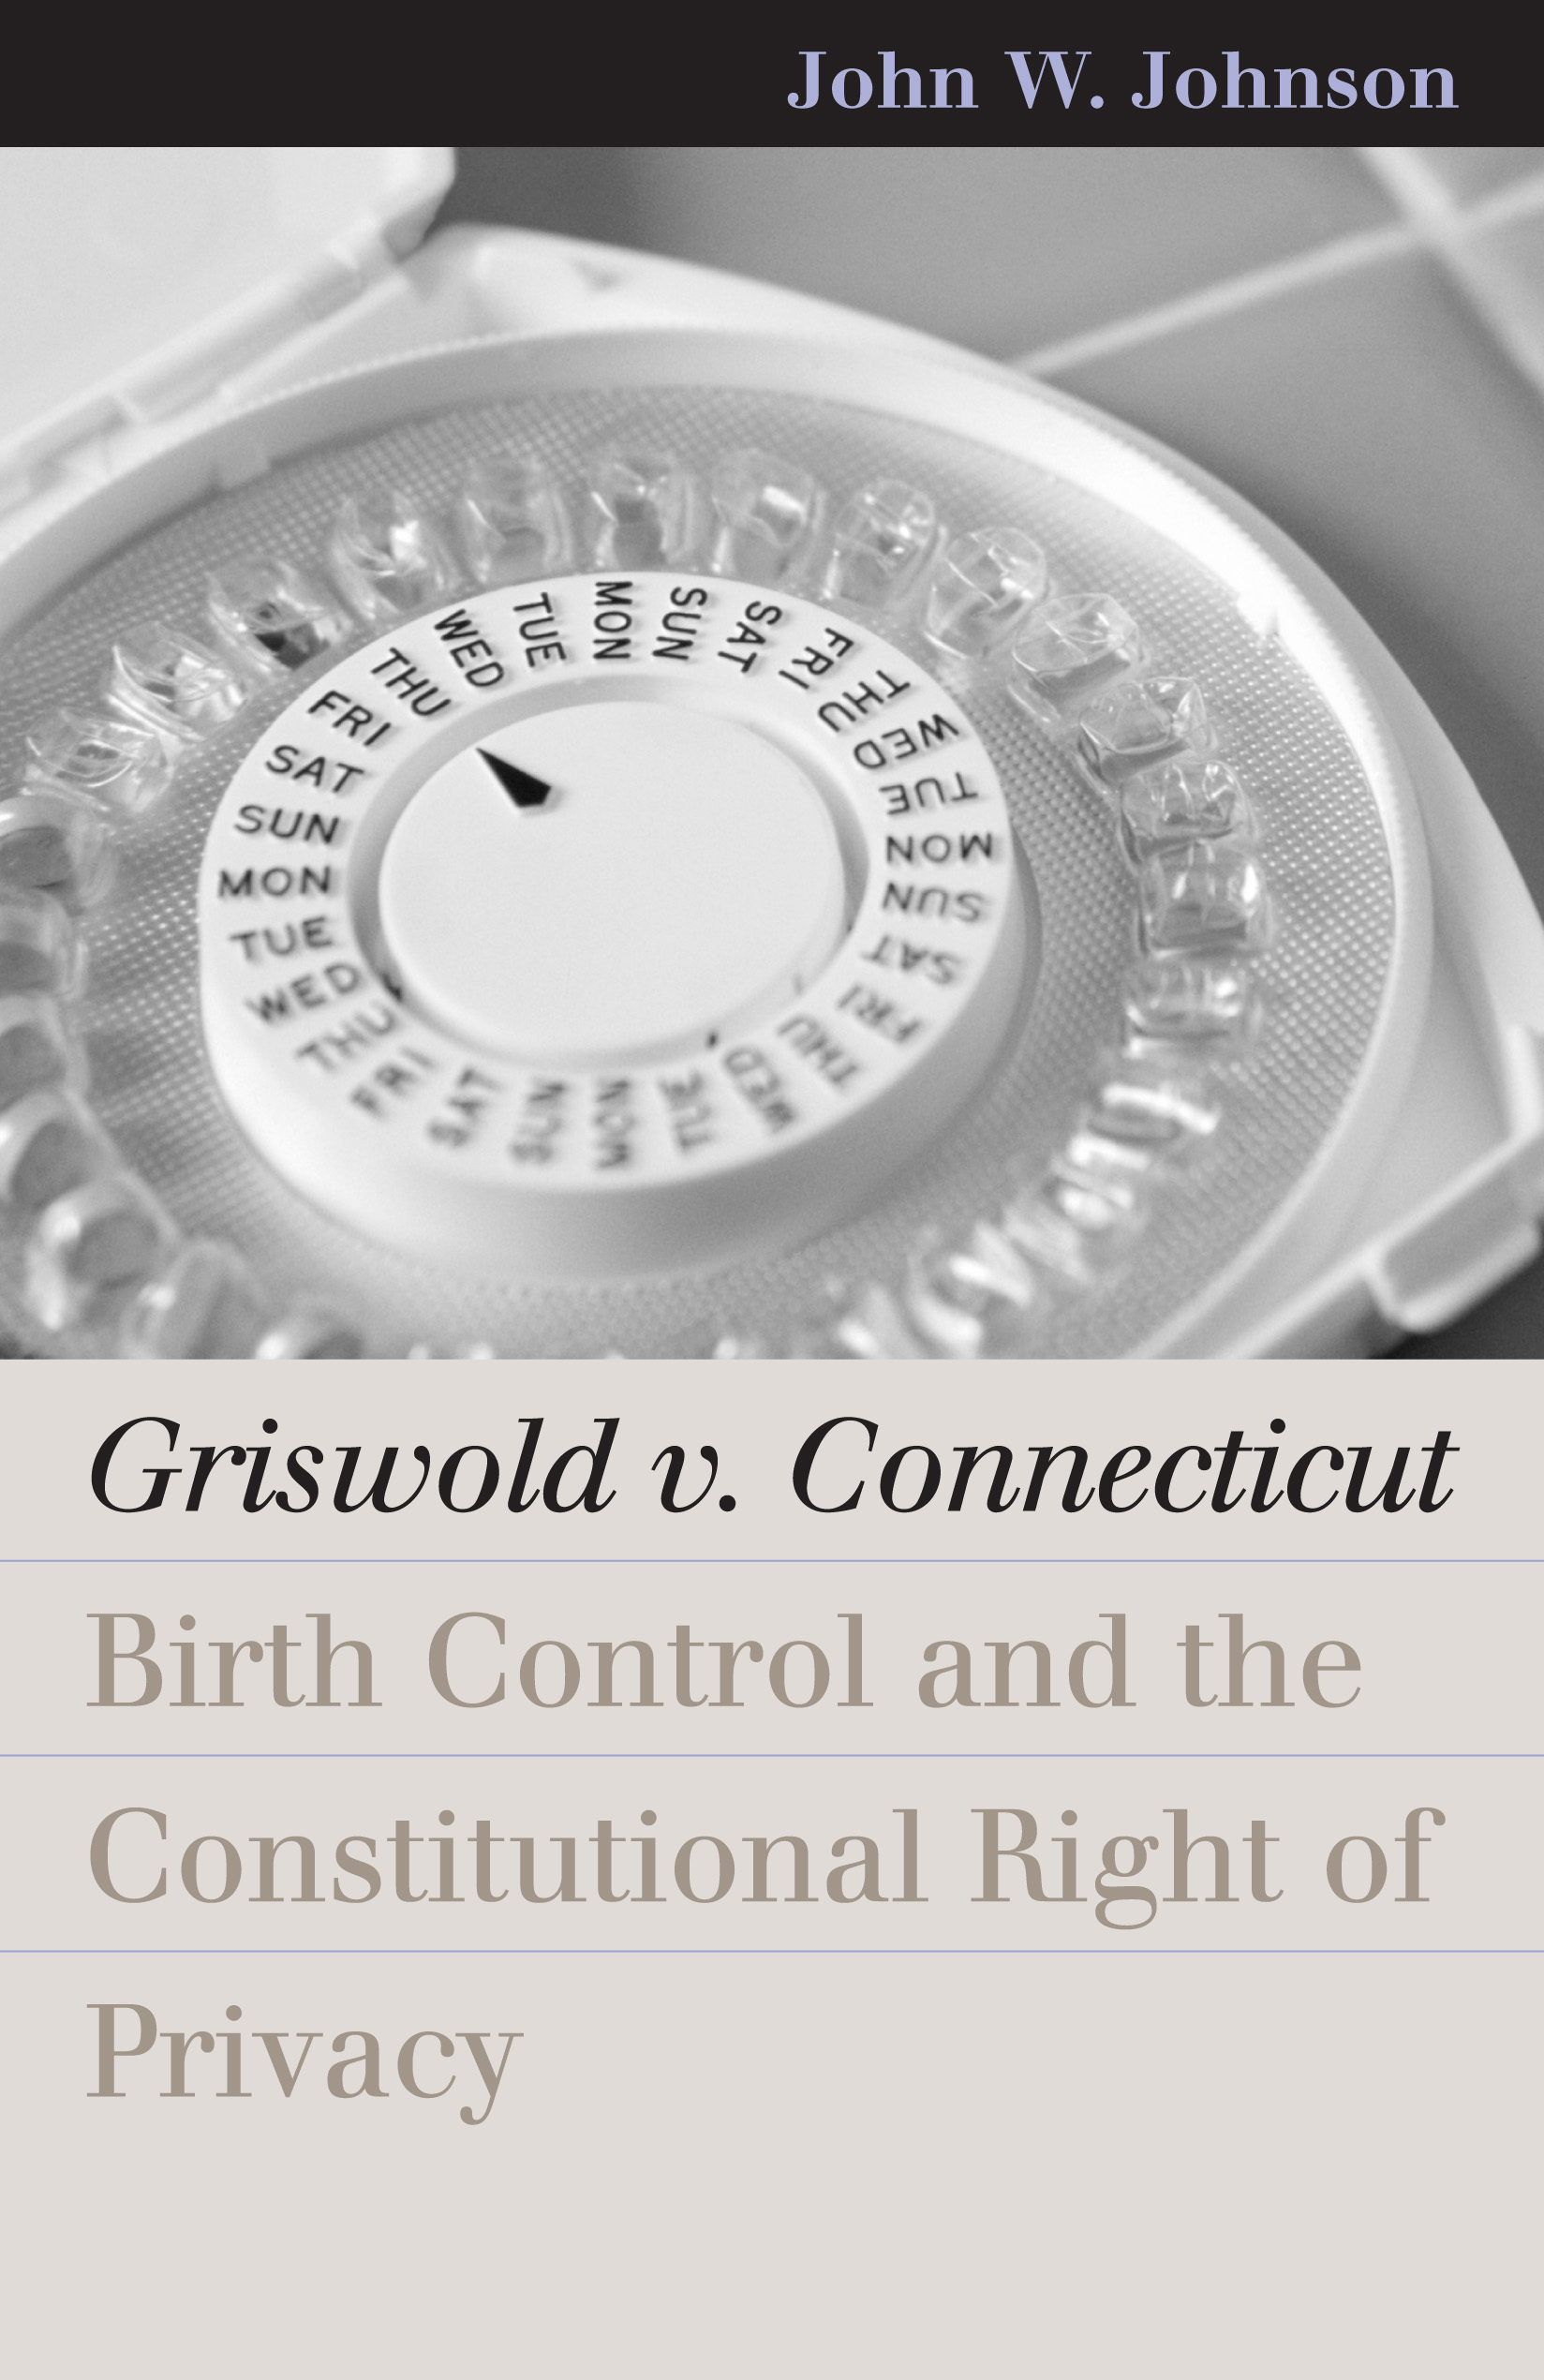 "an overview of the griswold versus connecticut Reviews in american history 22: 725-731, 1994 lockhart, andrea ""part one: family, the constitution, and federalism: griswold v connecticut: a case brief"" journal of contemporary legal issues 1-3(1) 1997 loewy, arnold h ""morals legislation and the establishment clause"" alabama law review."